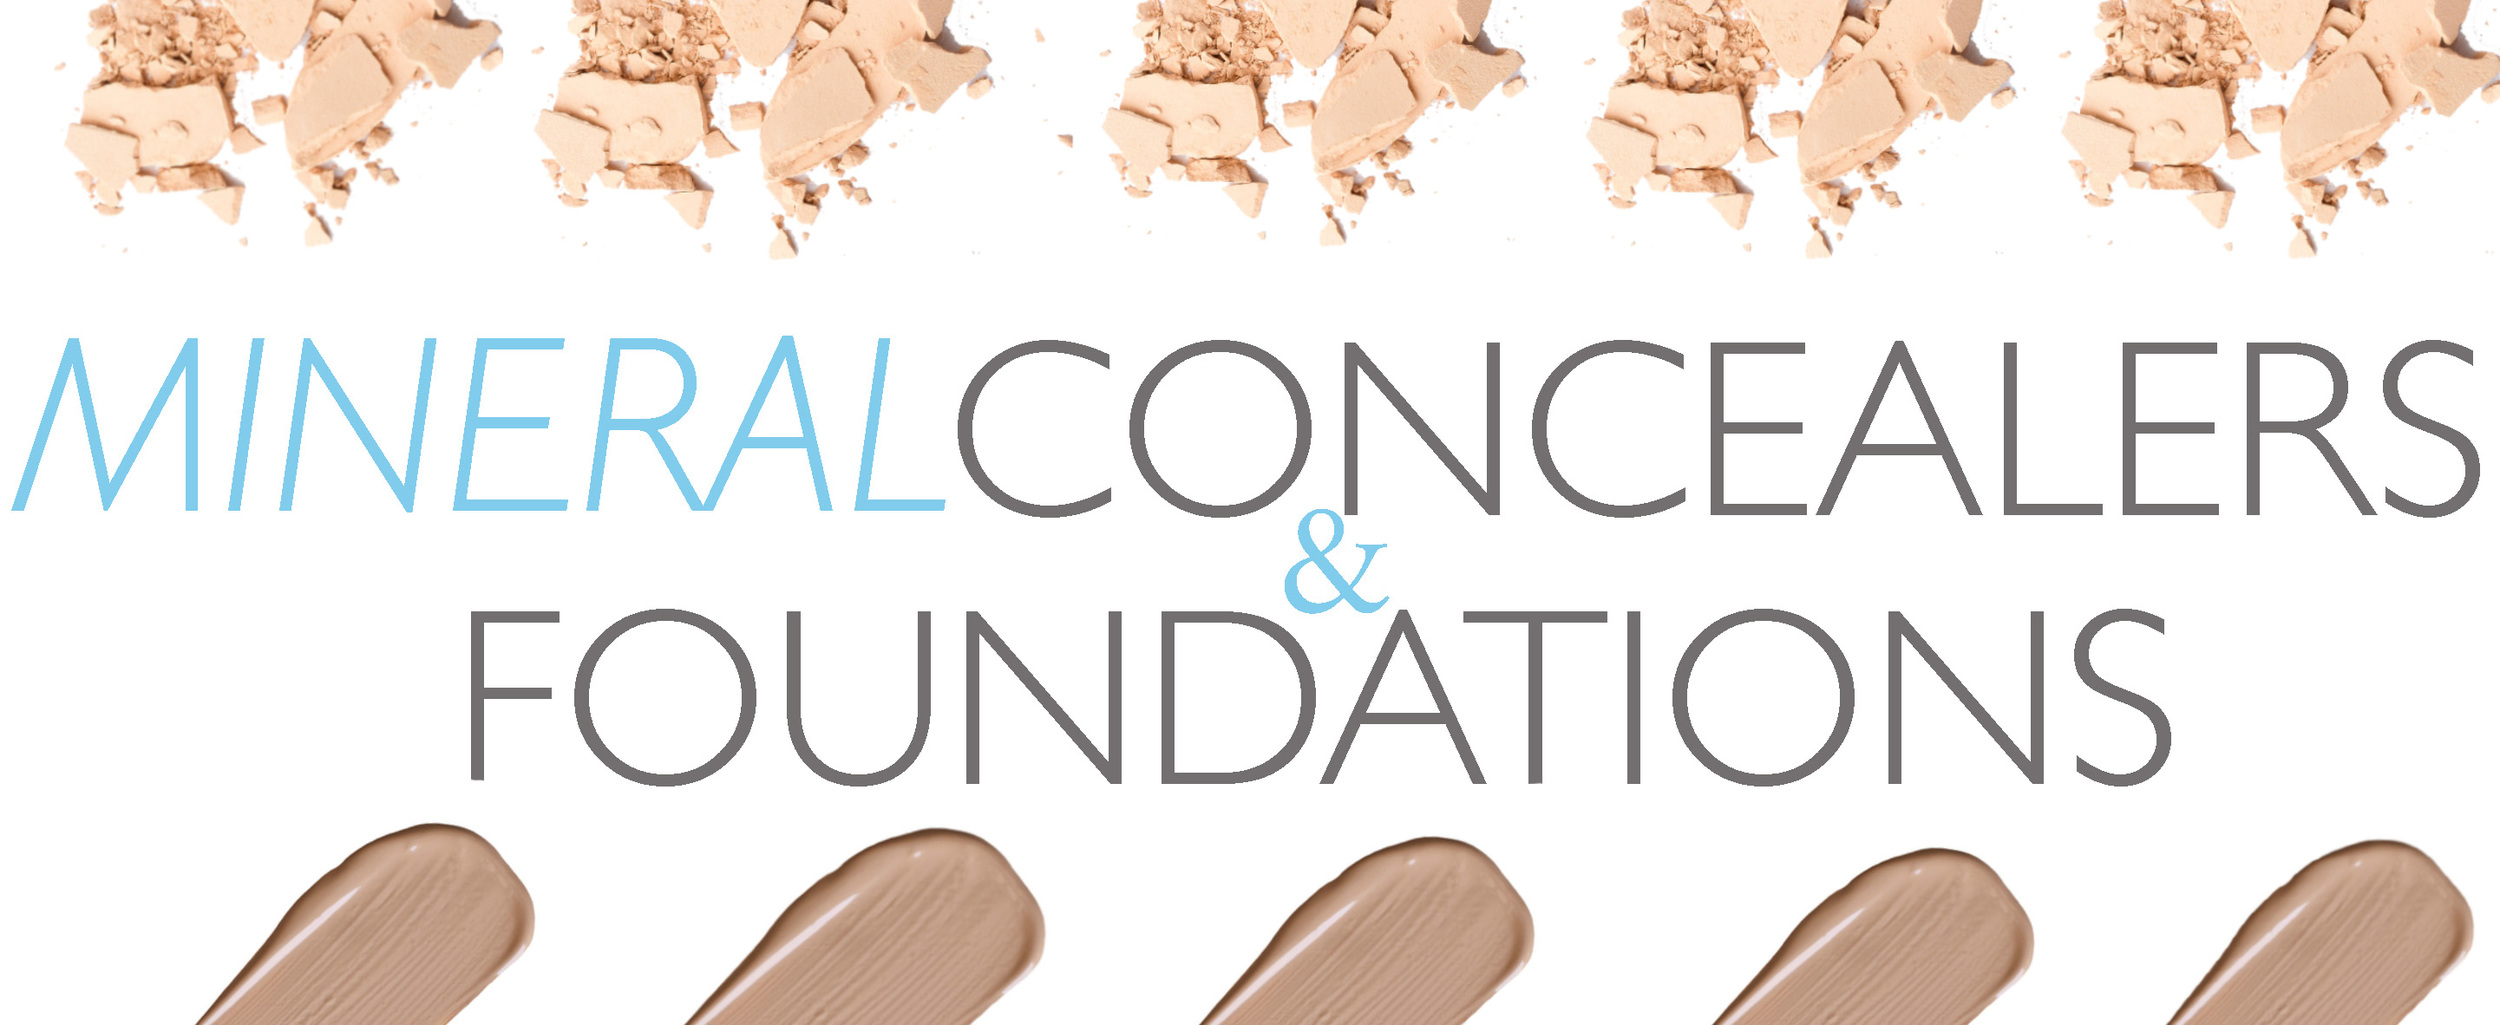 Mineral Foundations.jpg